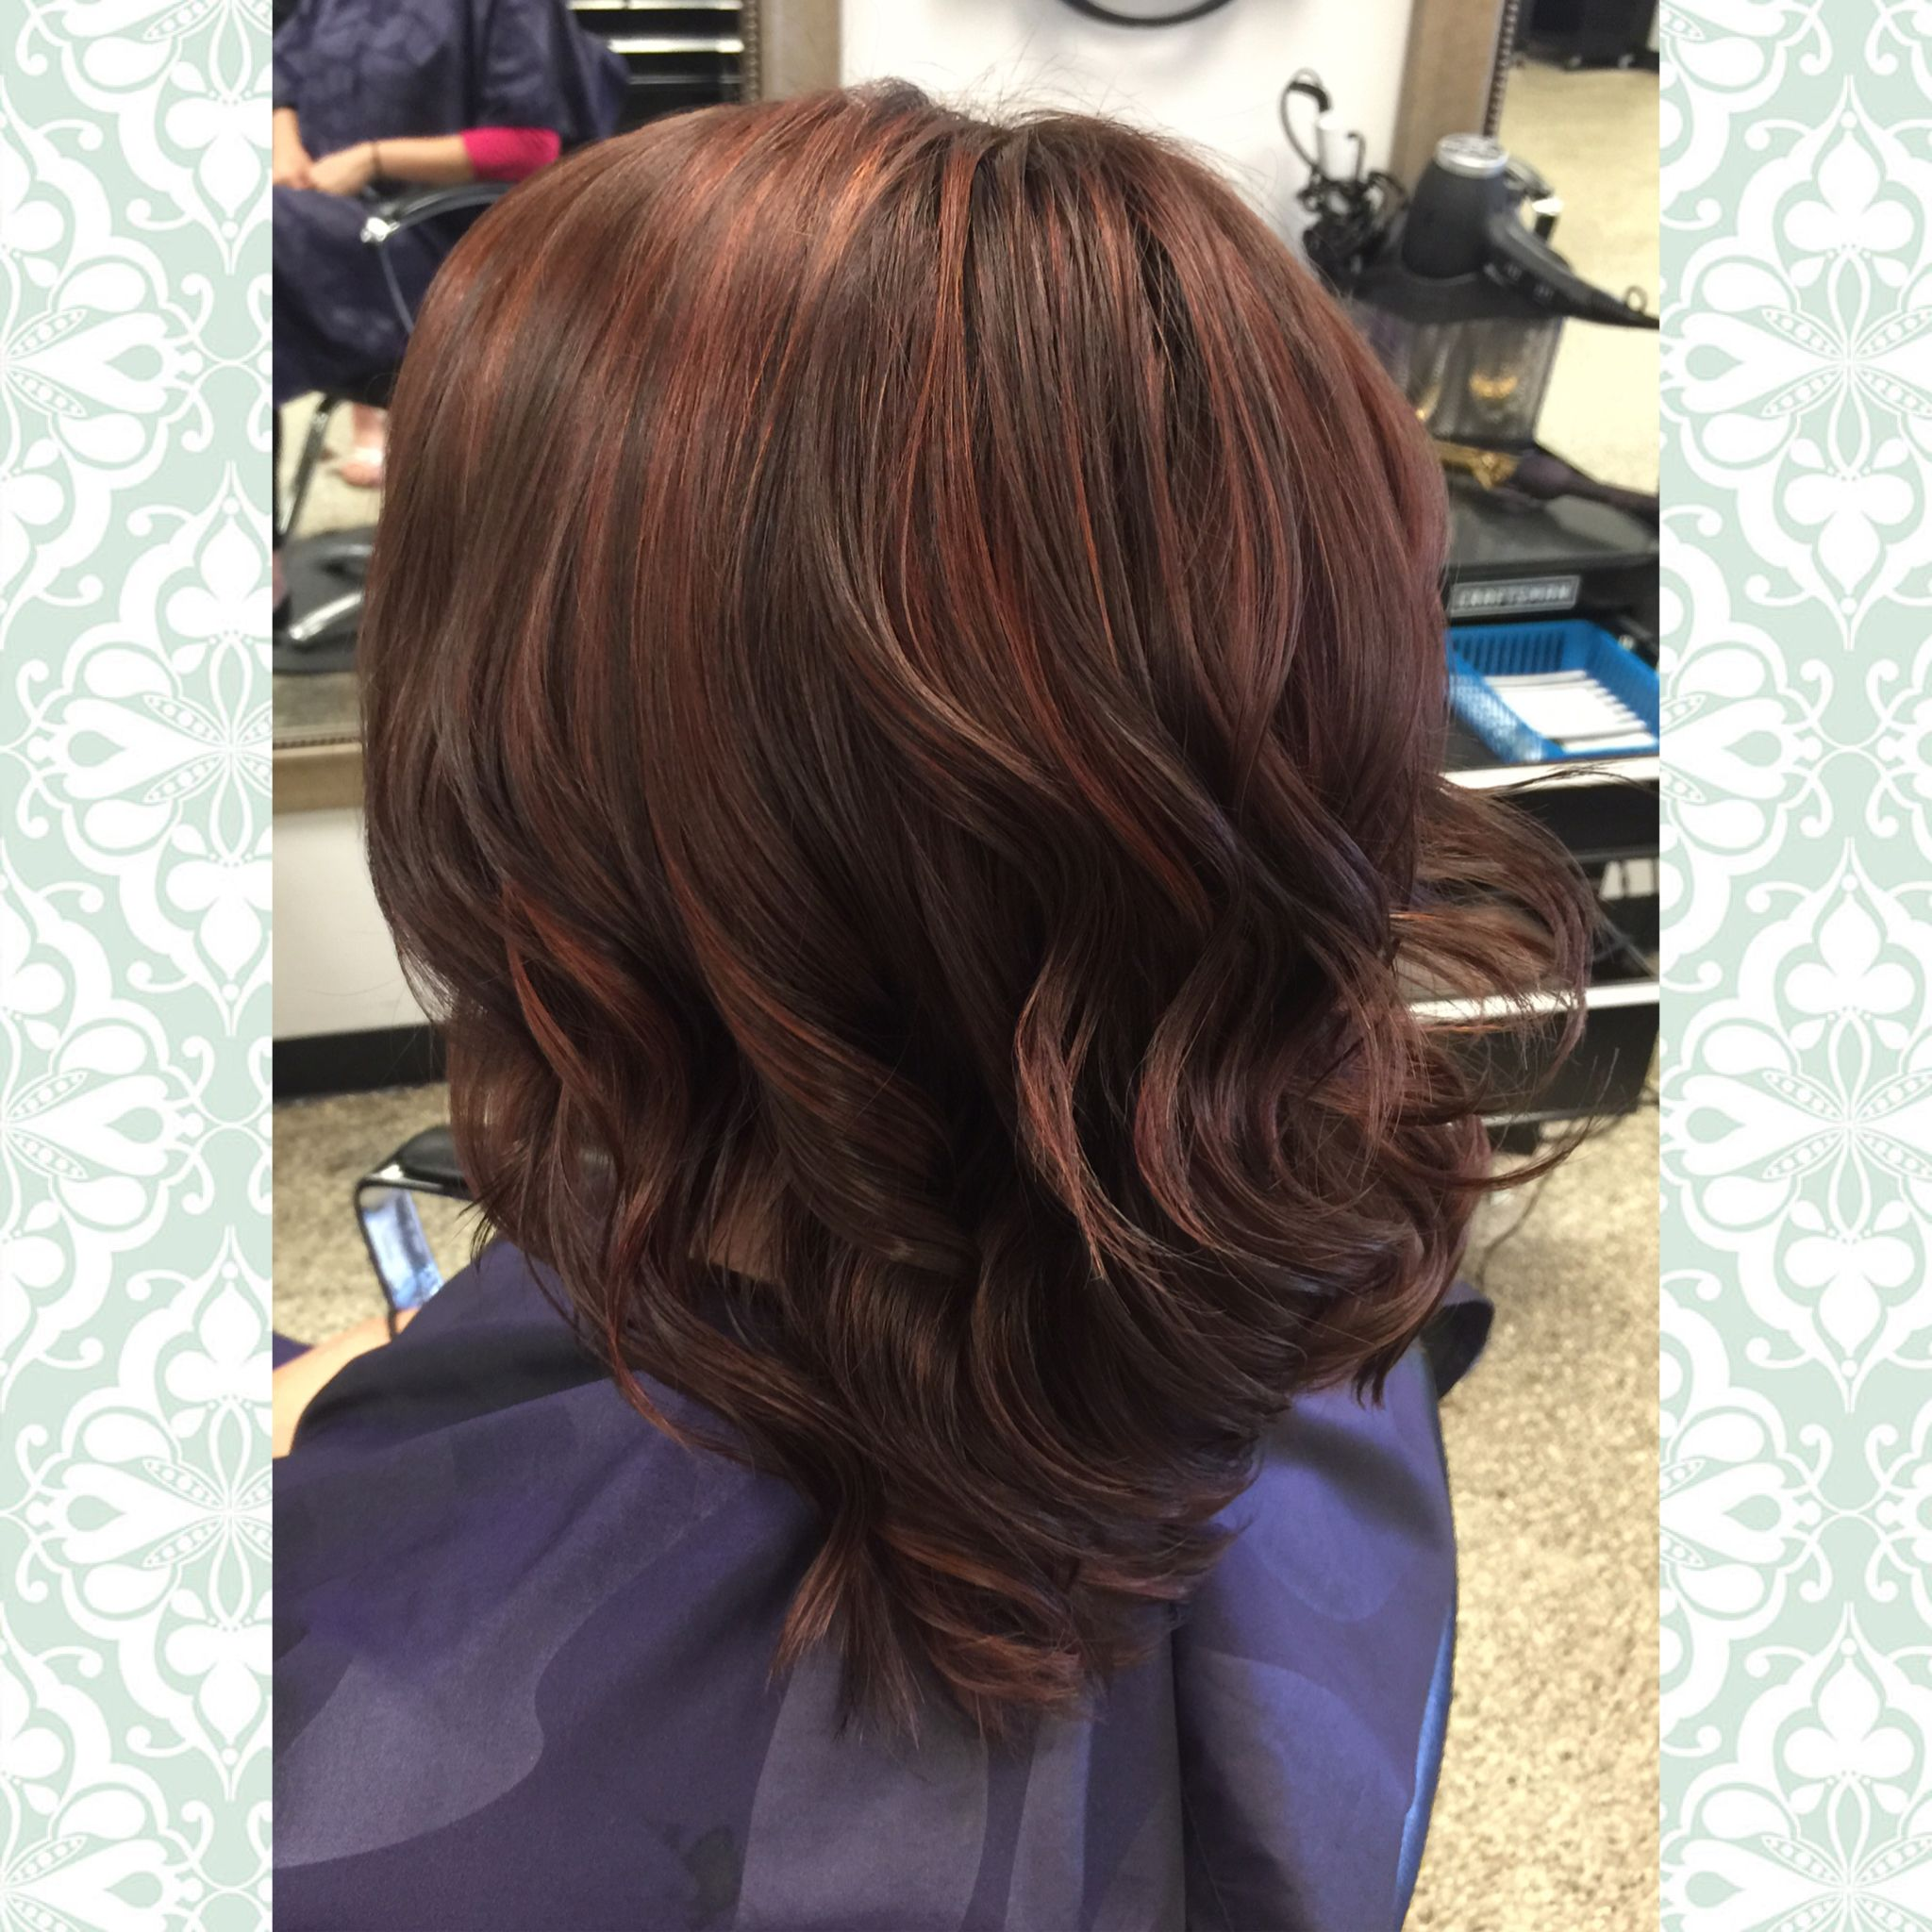 Chocolate Brown Hair With A Cinnamon Red Highlight Hair By Mandy Young Https Www Facebook Hair Color Chocolate Red Highlights In Brown Hair Cool Hair Color